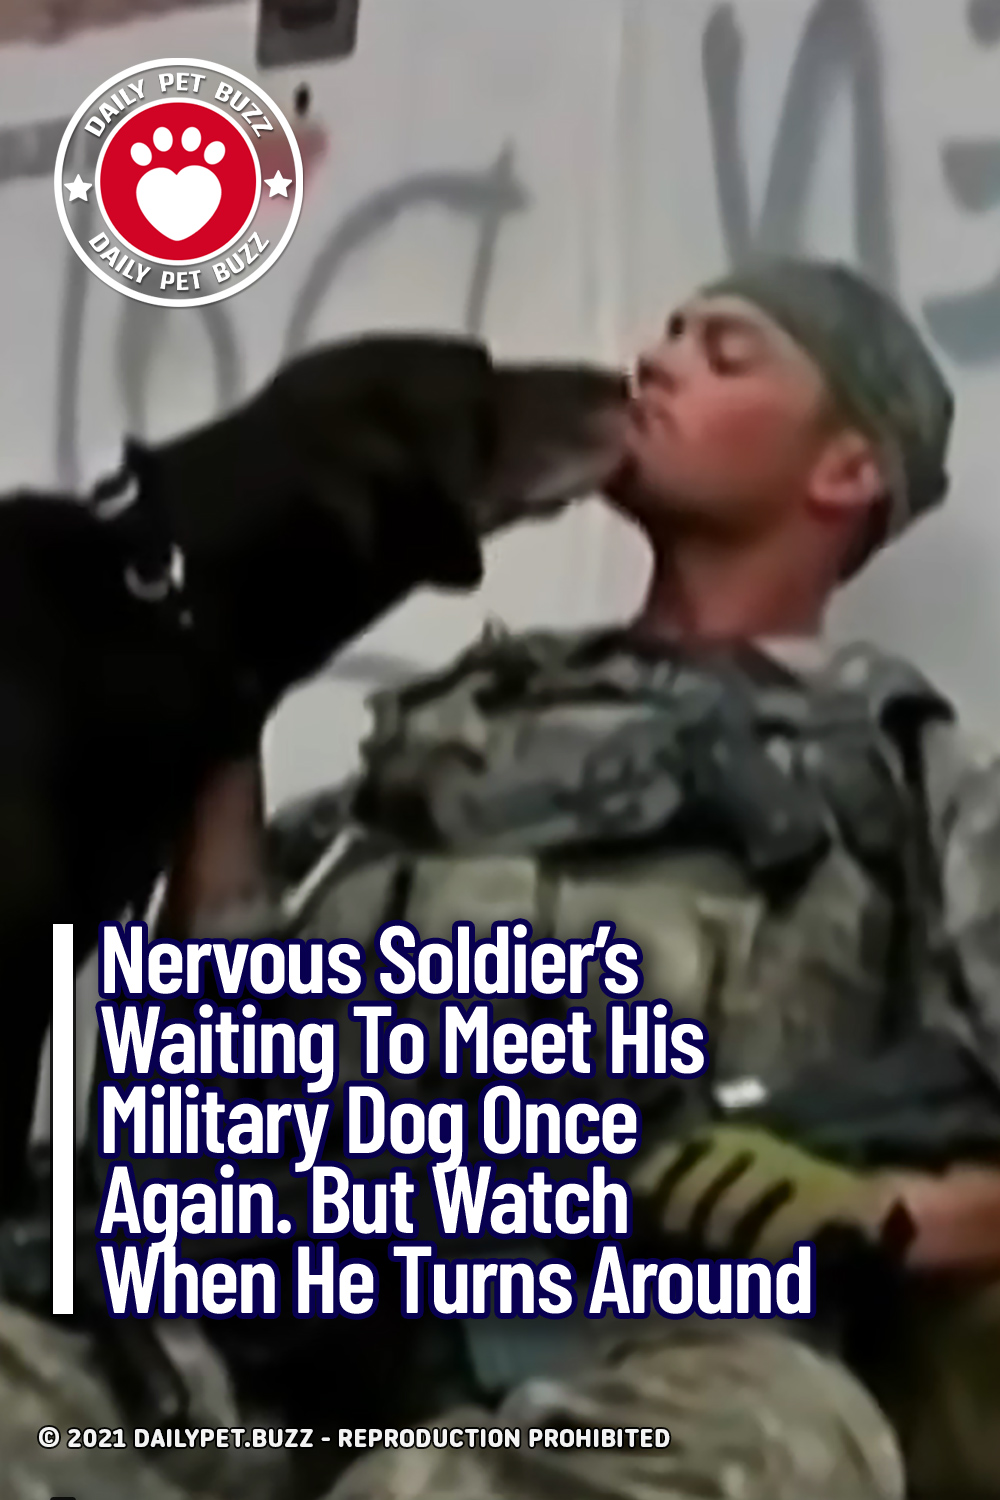 Nervous Soldier\'s Waiting To Meet His Military Dog Once Again. But Watch When He Turns Around